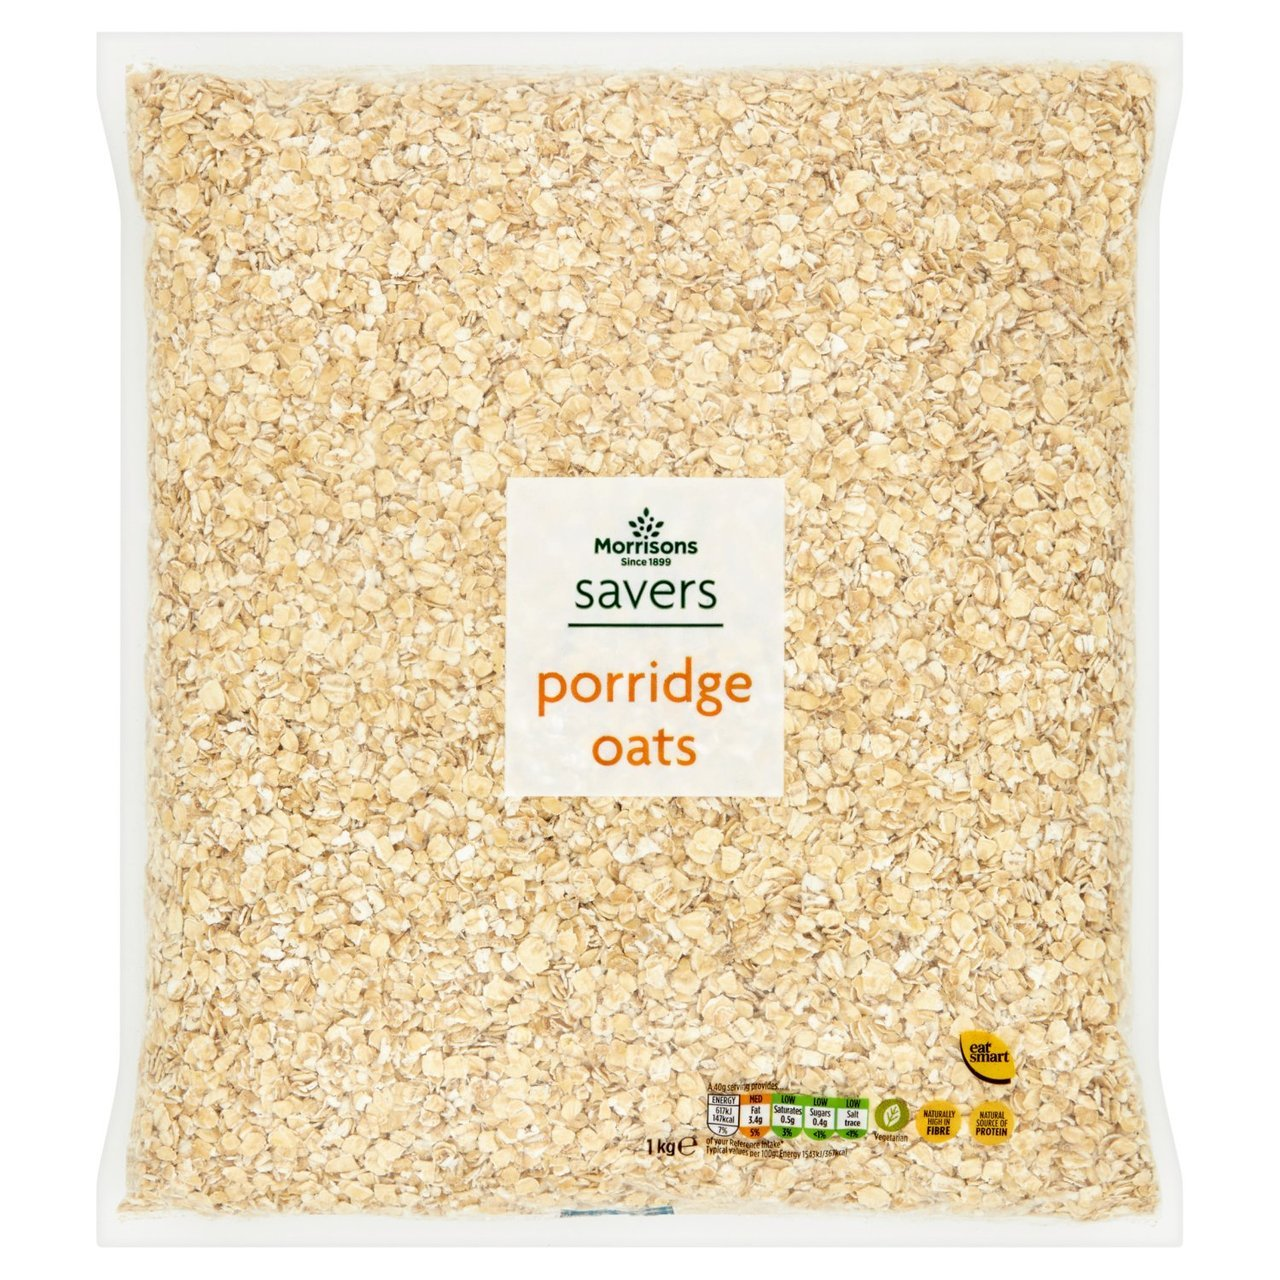 But a 1kg bag of porridge oats from Morrisons is just 75p